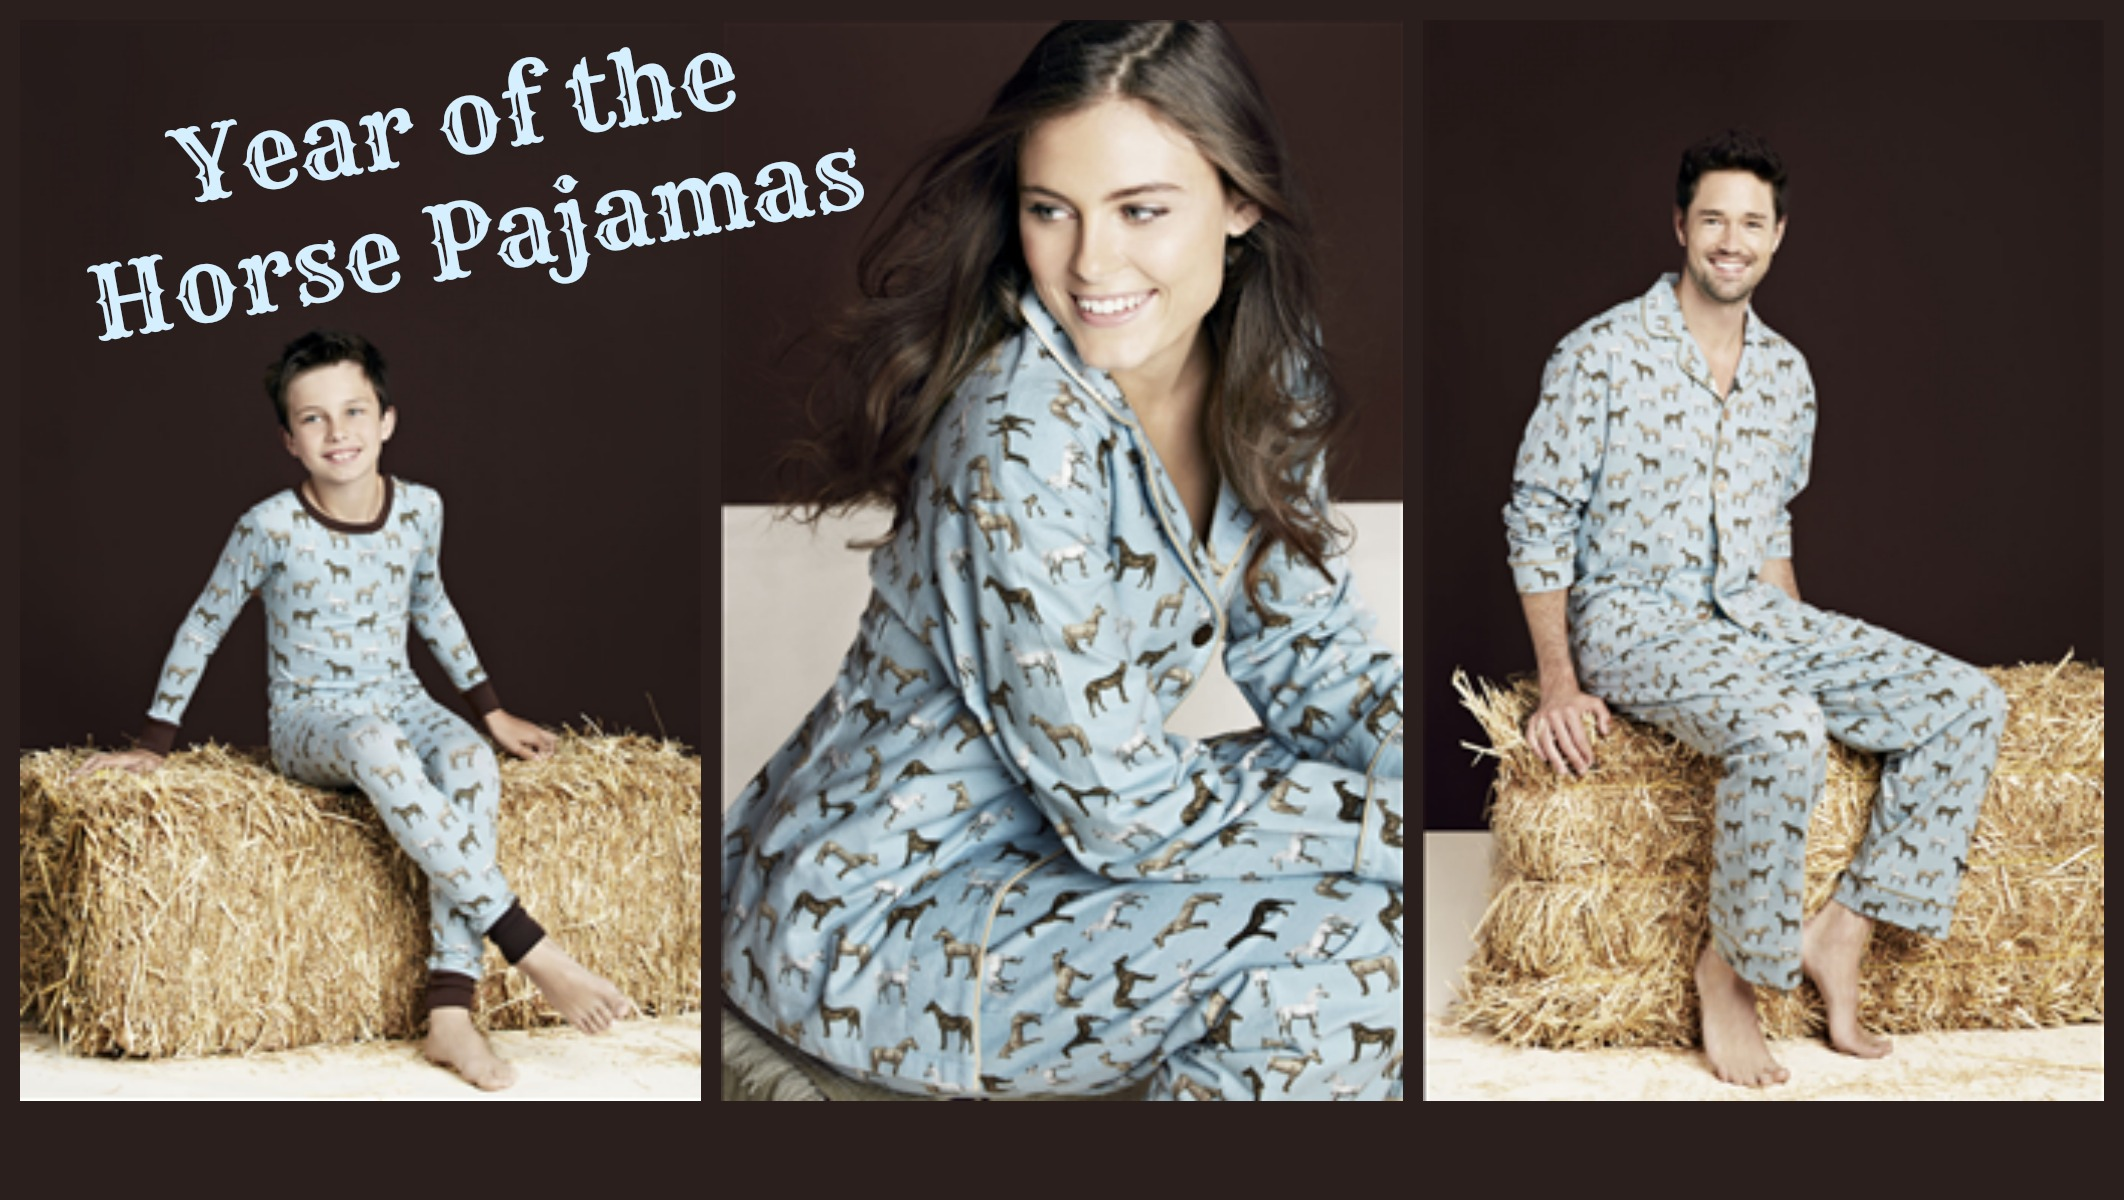 Year of the Horse Pajamas